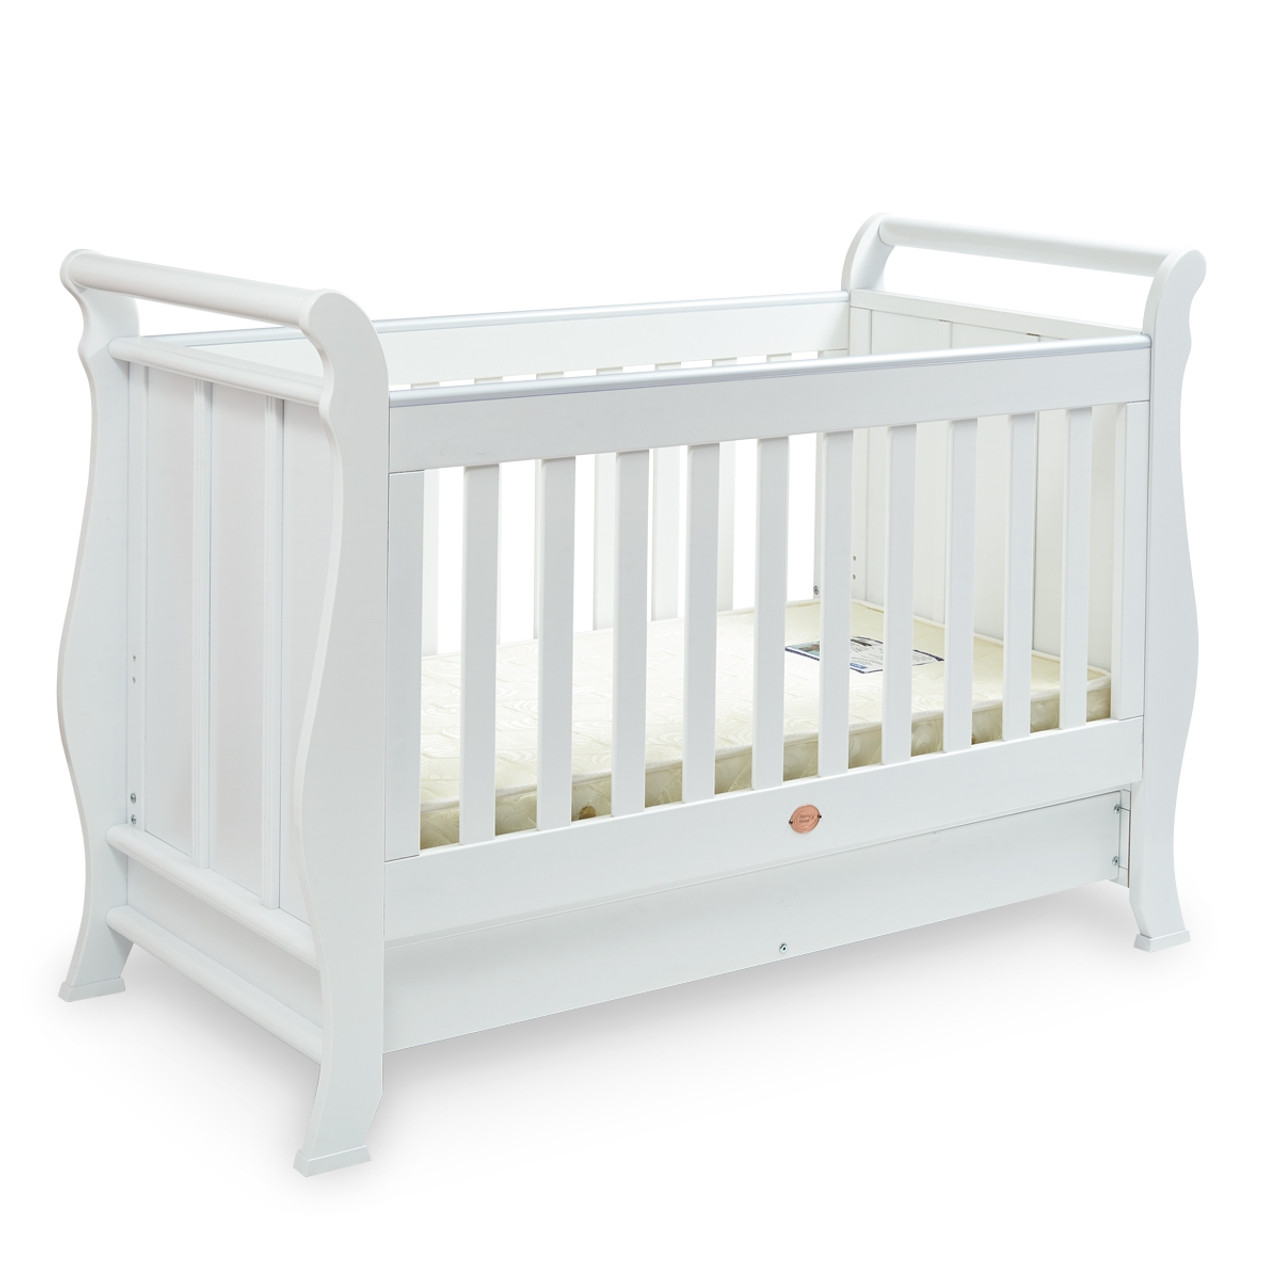 - Super Nanny 4 In 1 Classic Sleigh Cot Bed - White -Babies NZ